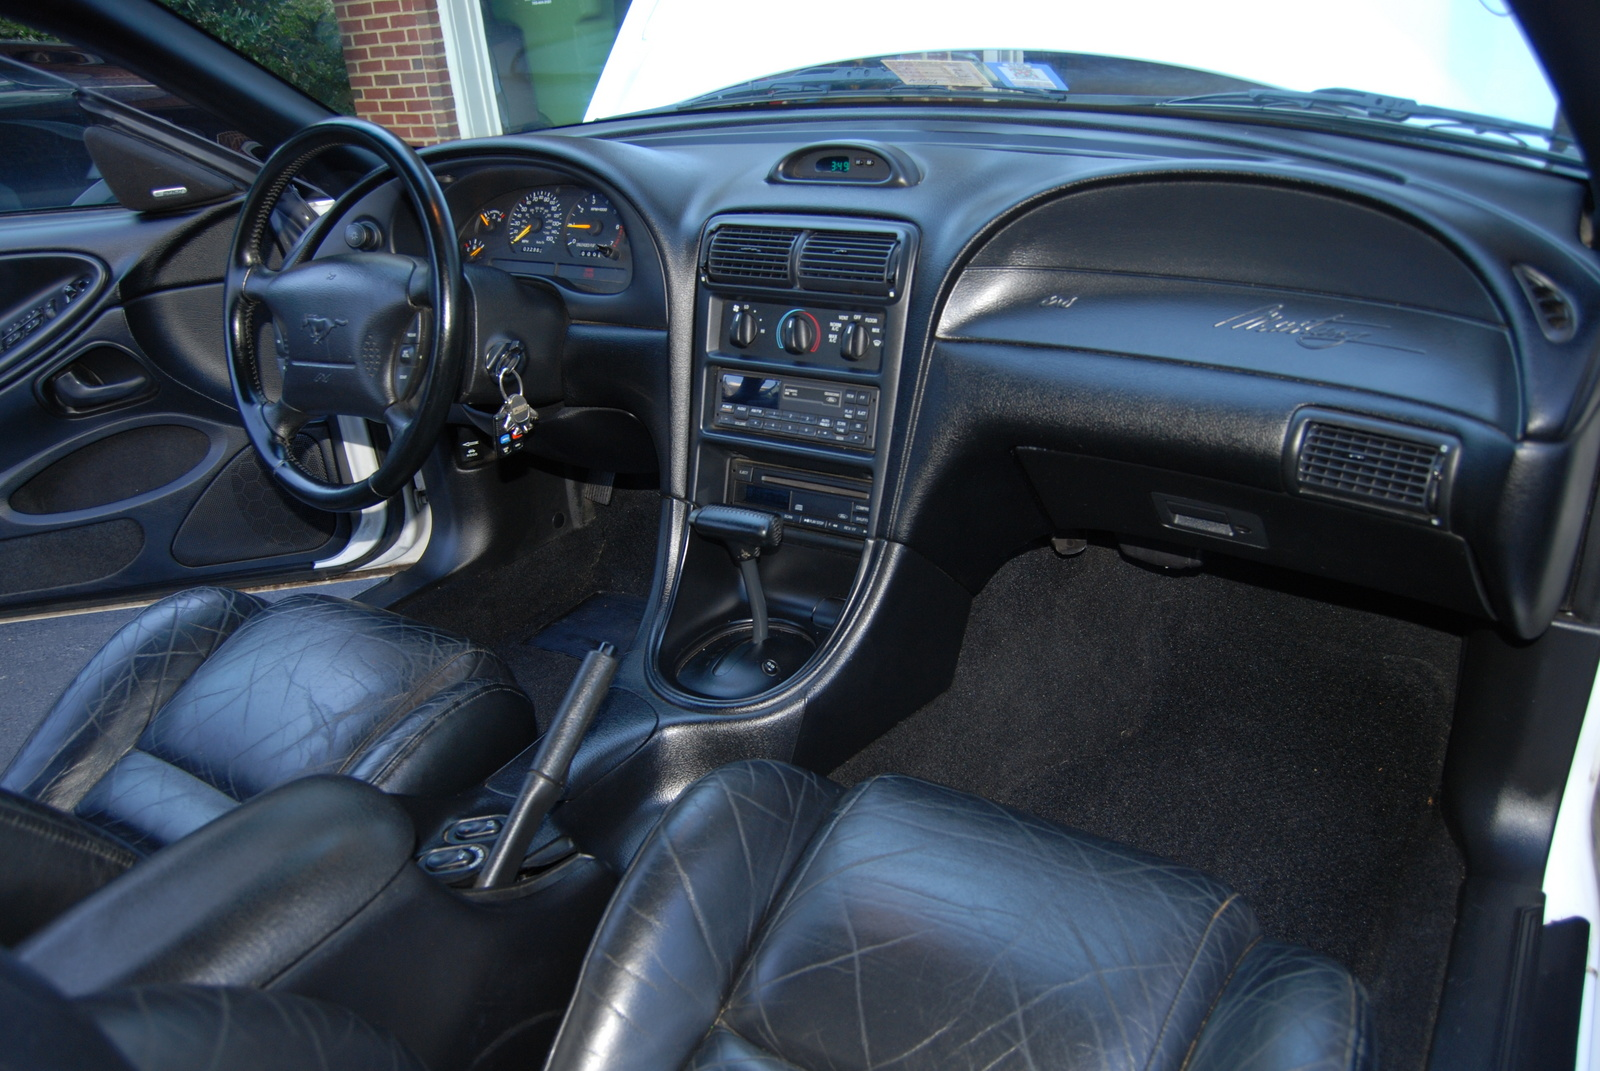 1994 Ford Mustang Interior Pictures Cargurus